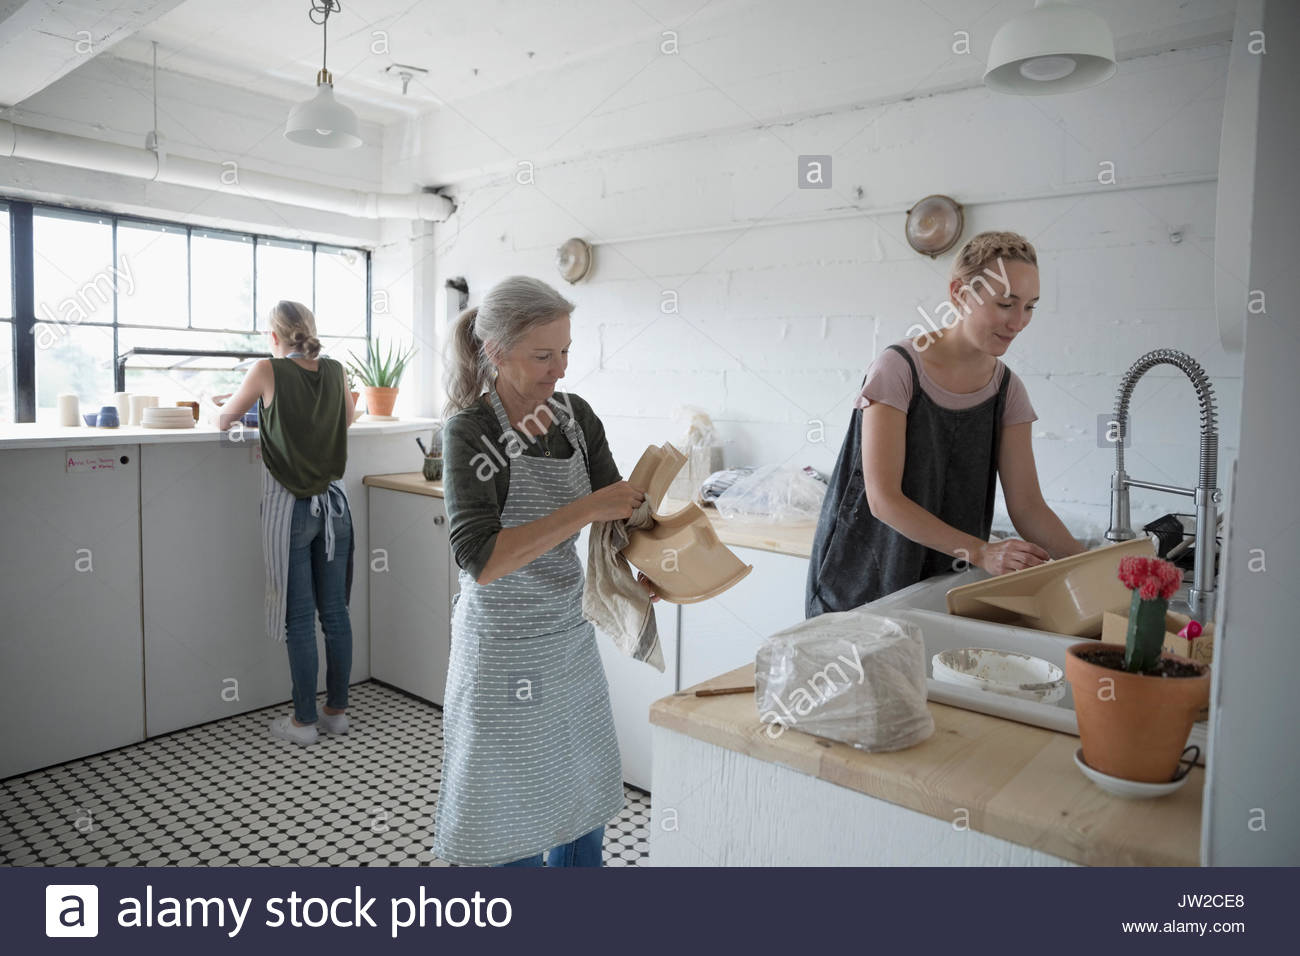 Female potters cleaning equipment in art studio - Stock Image